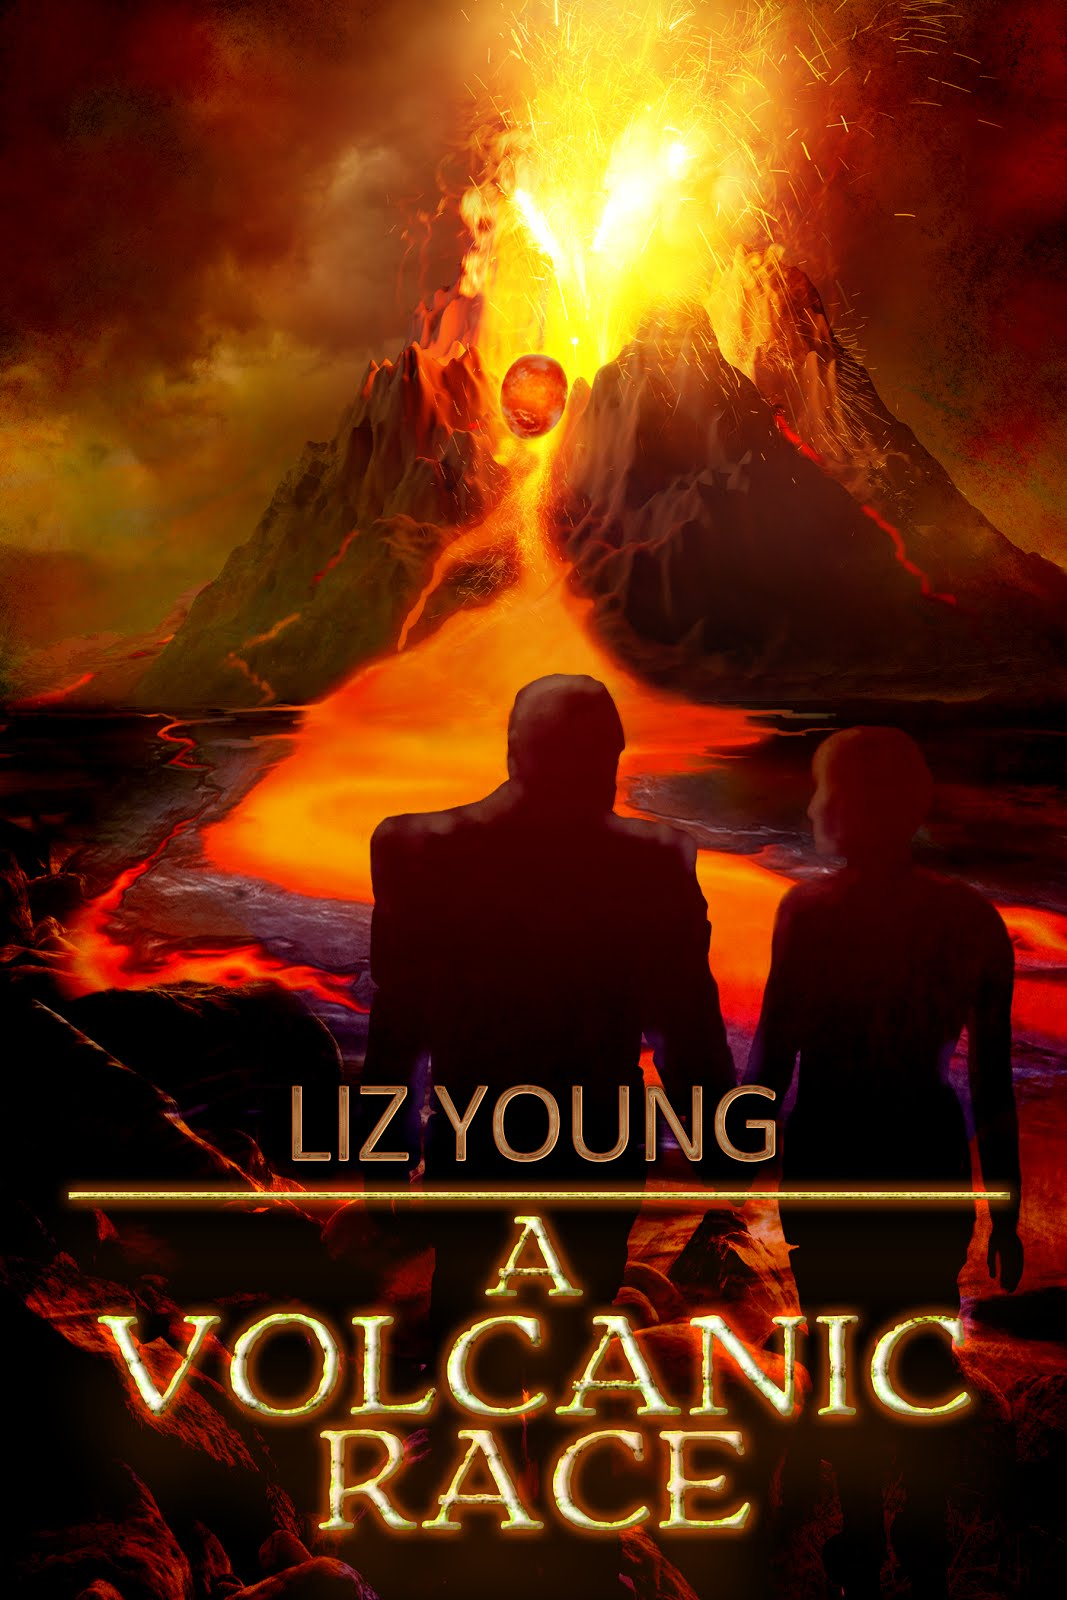 Buy now on https://www.amazon.co.uk/Volcanic-Race-Living-Rock-Book-ebook/dp/B077J3S6V5/ref=sr_1_1?s